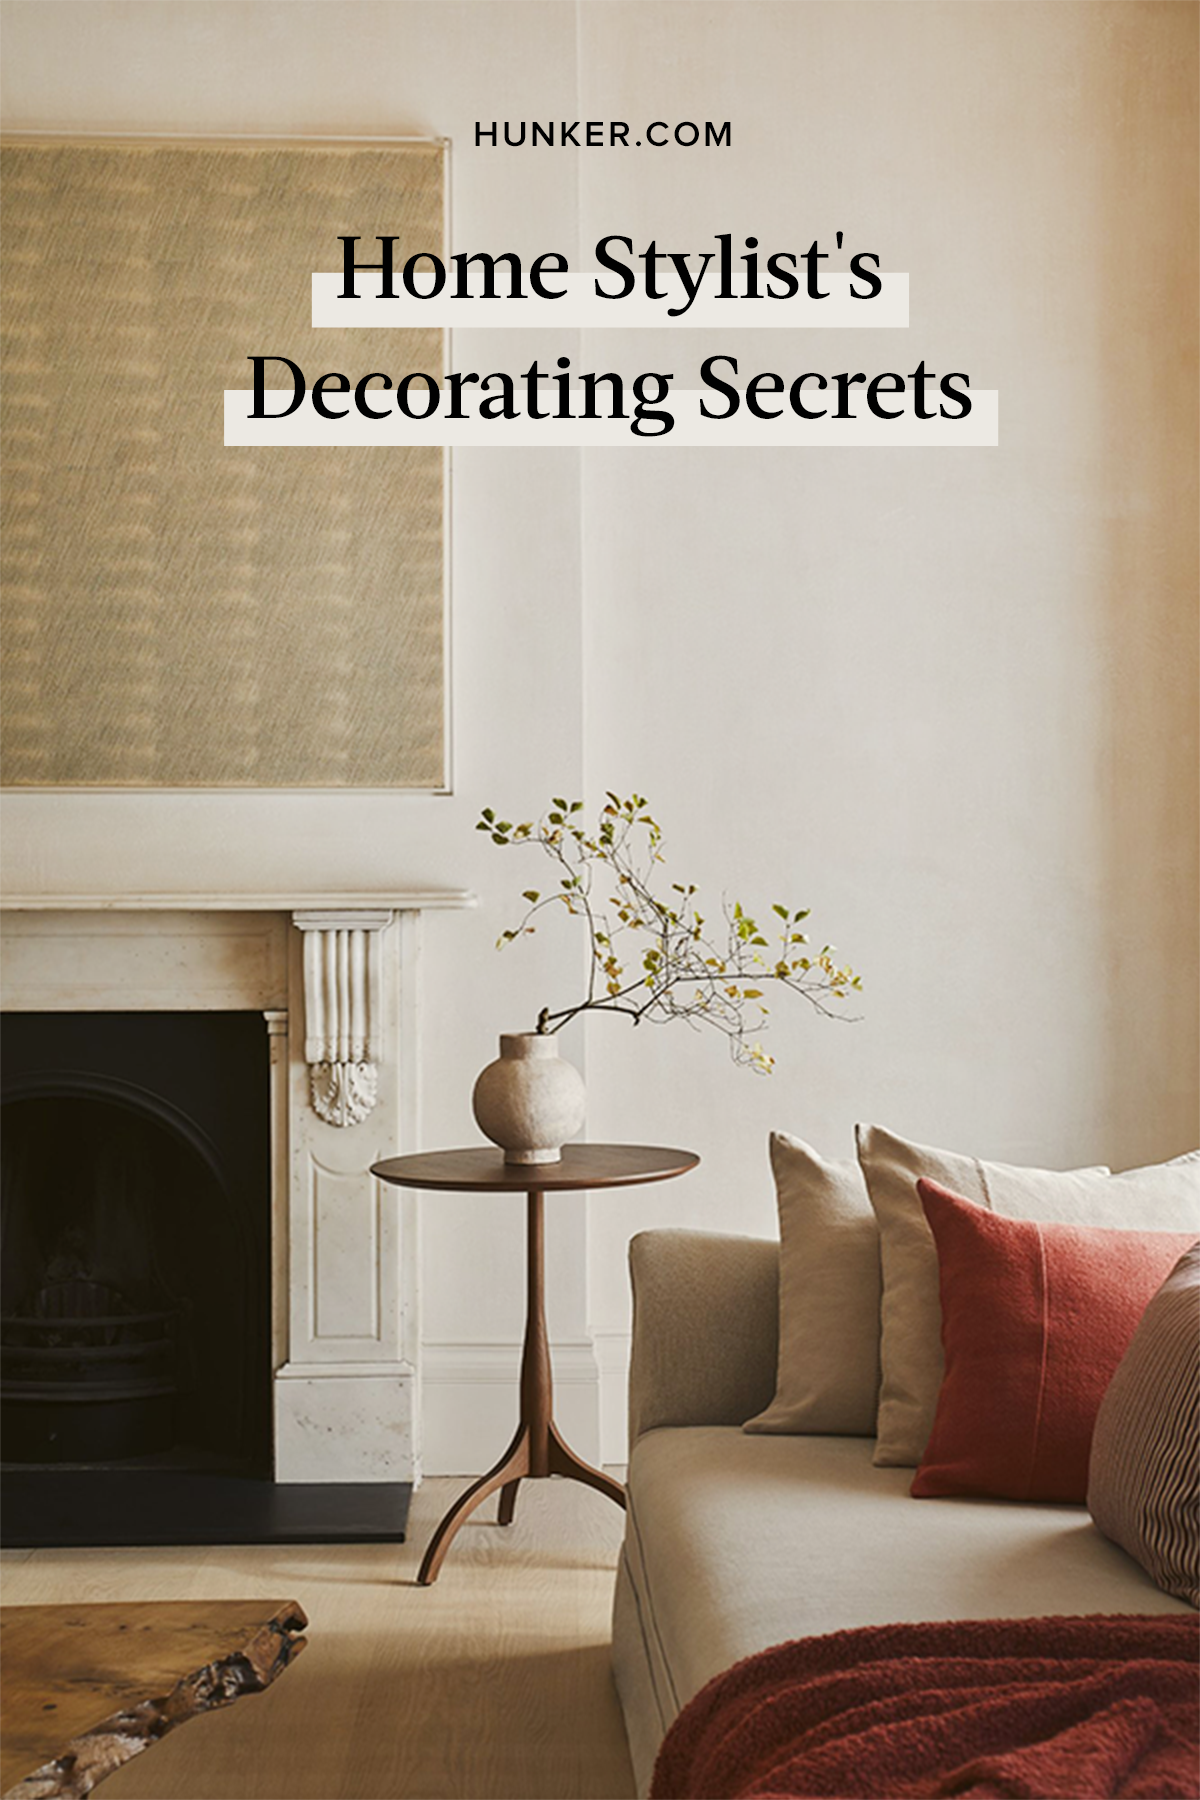 Ahead, home stylist reveals the color trends that will be in every stylish home this season, his favorite Zara Home pieces to work with, and the biggest decorating mistakes he always notices. #hunkerhome #zara #homedecor #decorideas #decoratingsecrets